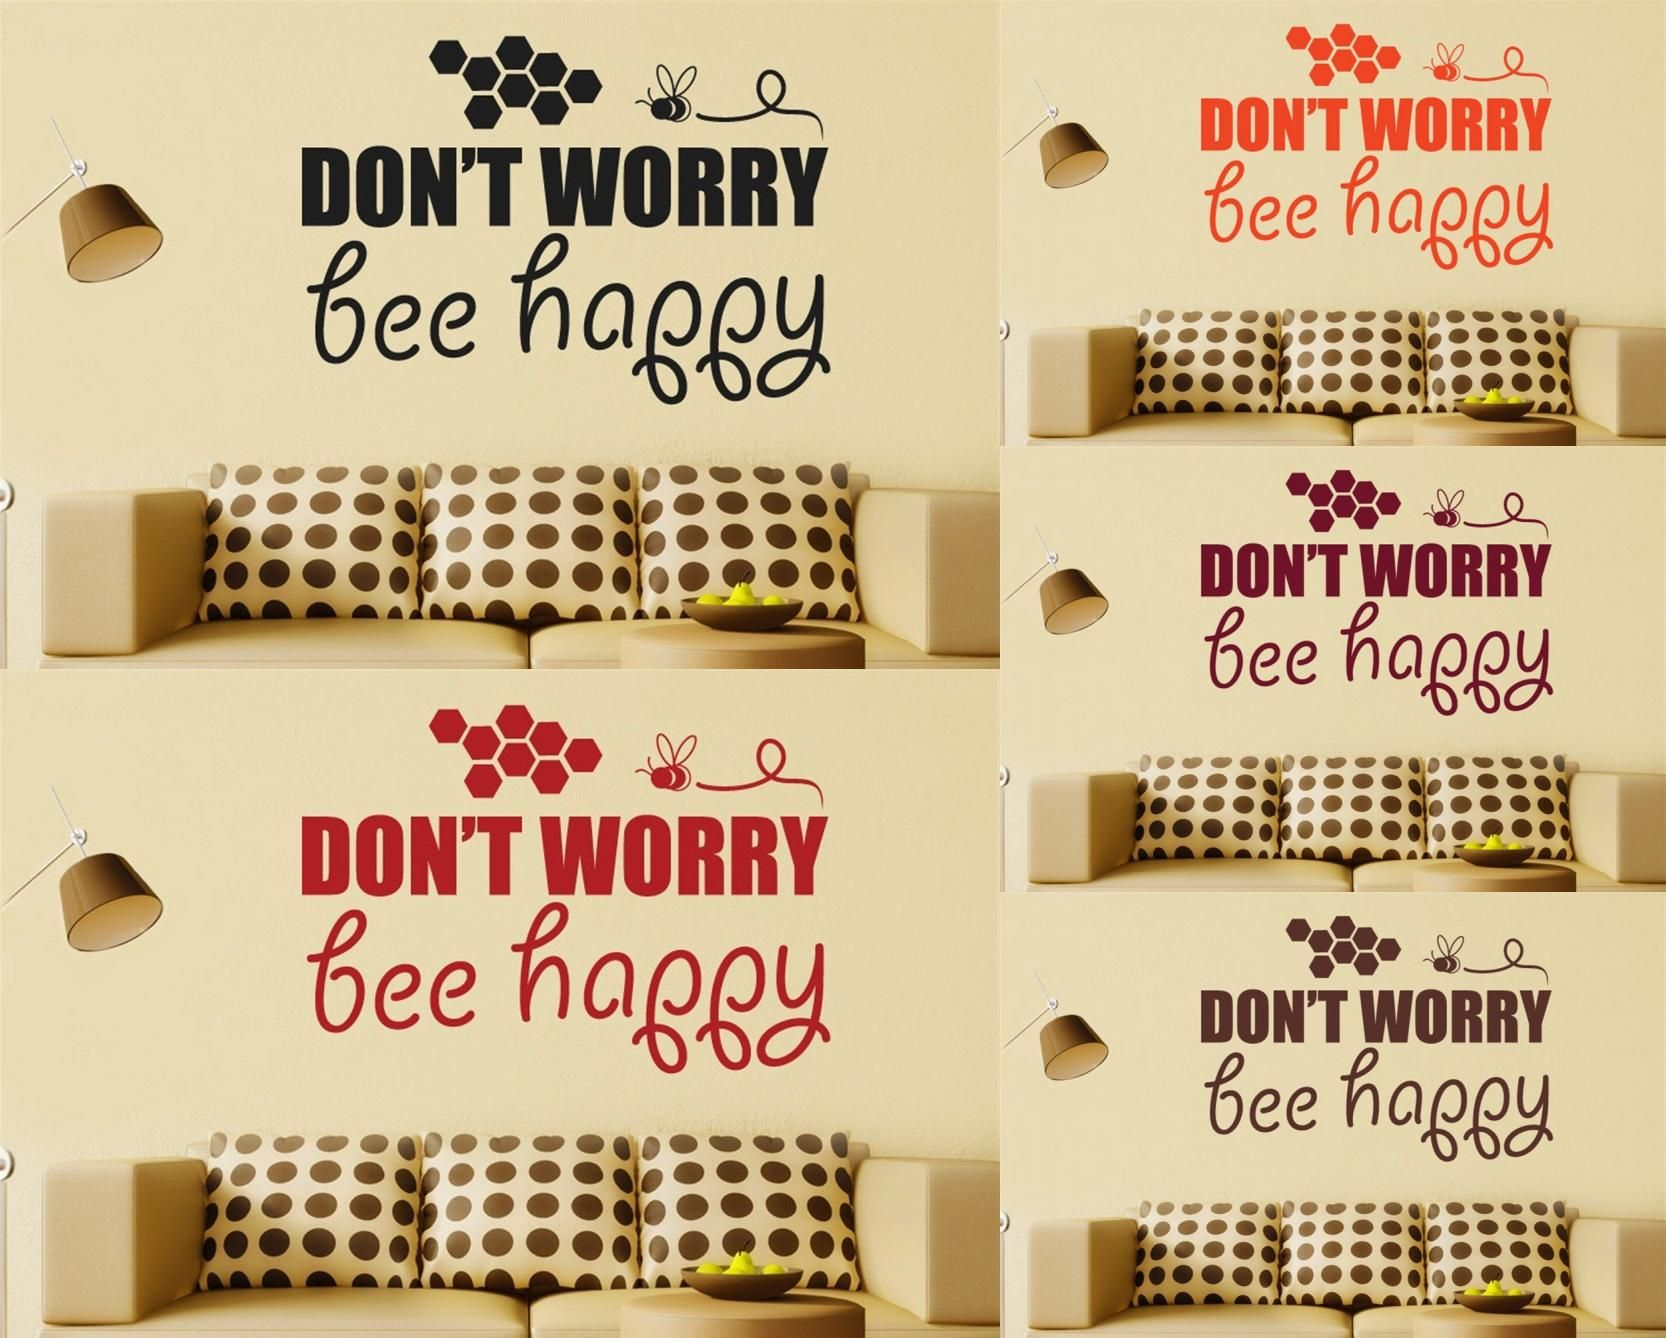 Visit to Buy] Dont Worry Bee Happy Vinyl Quote Wall Decal Sticker ...